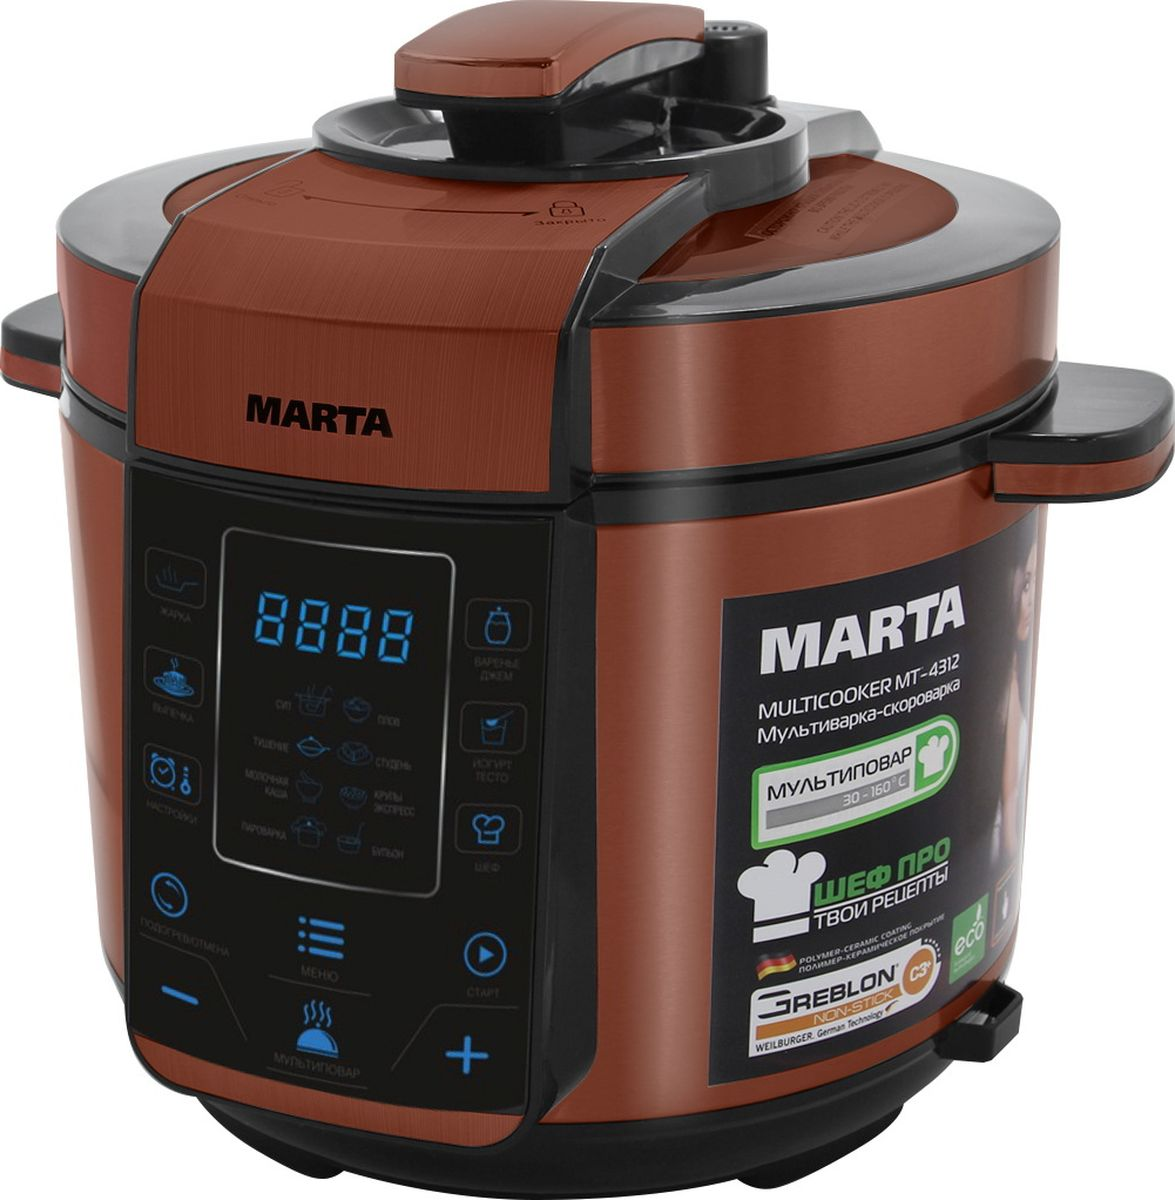 Marta MT-4312, Black Red мультиварка marta mt 1753 red garnet бутербродница